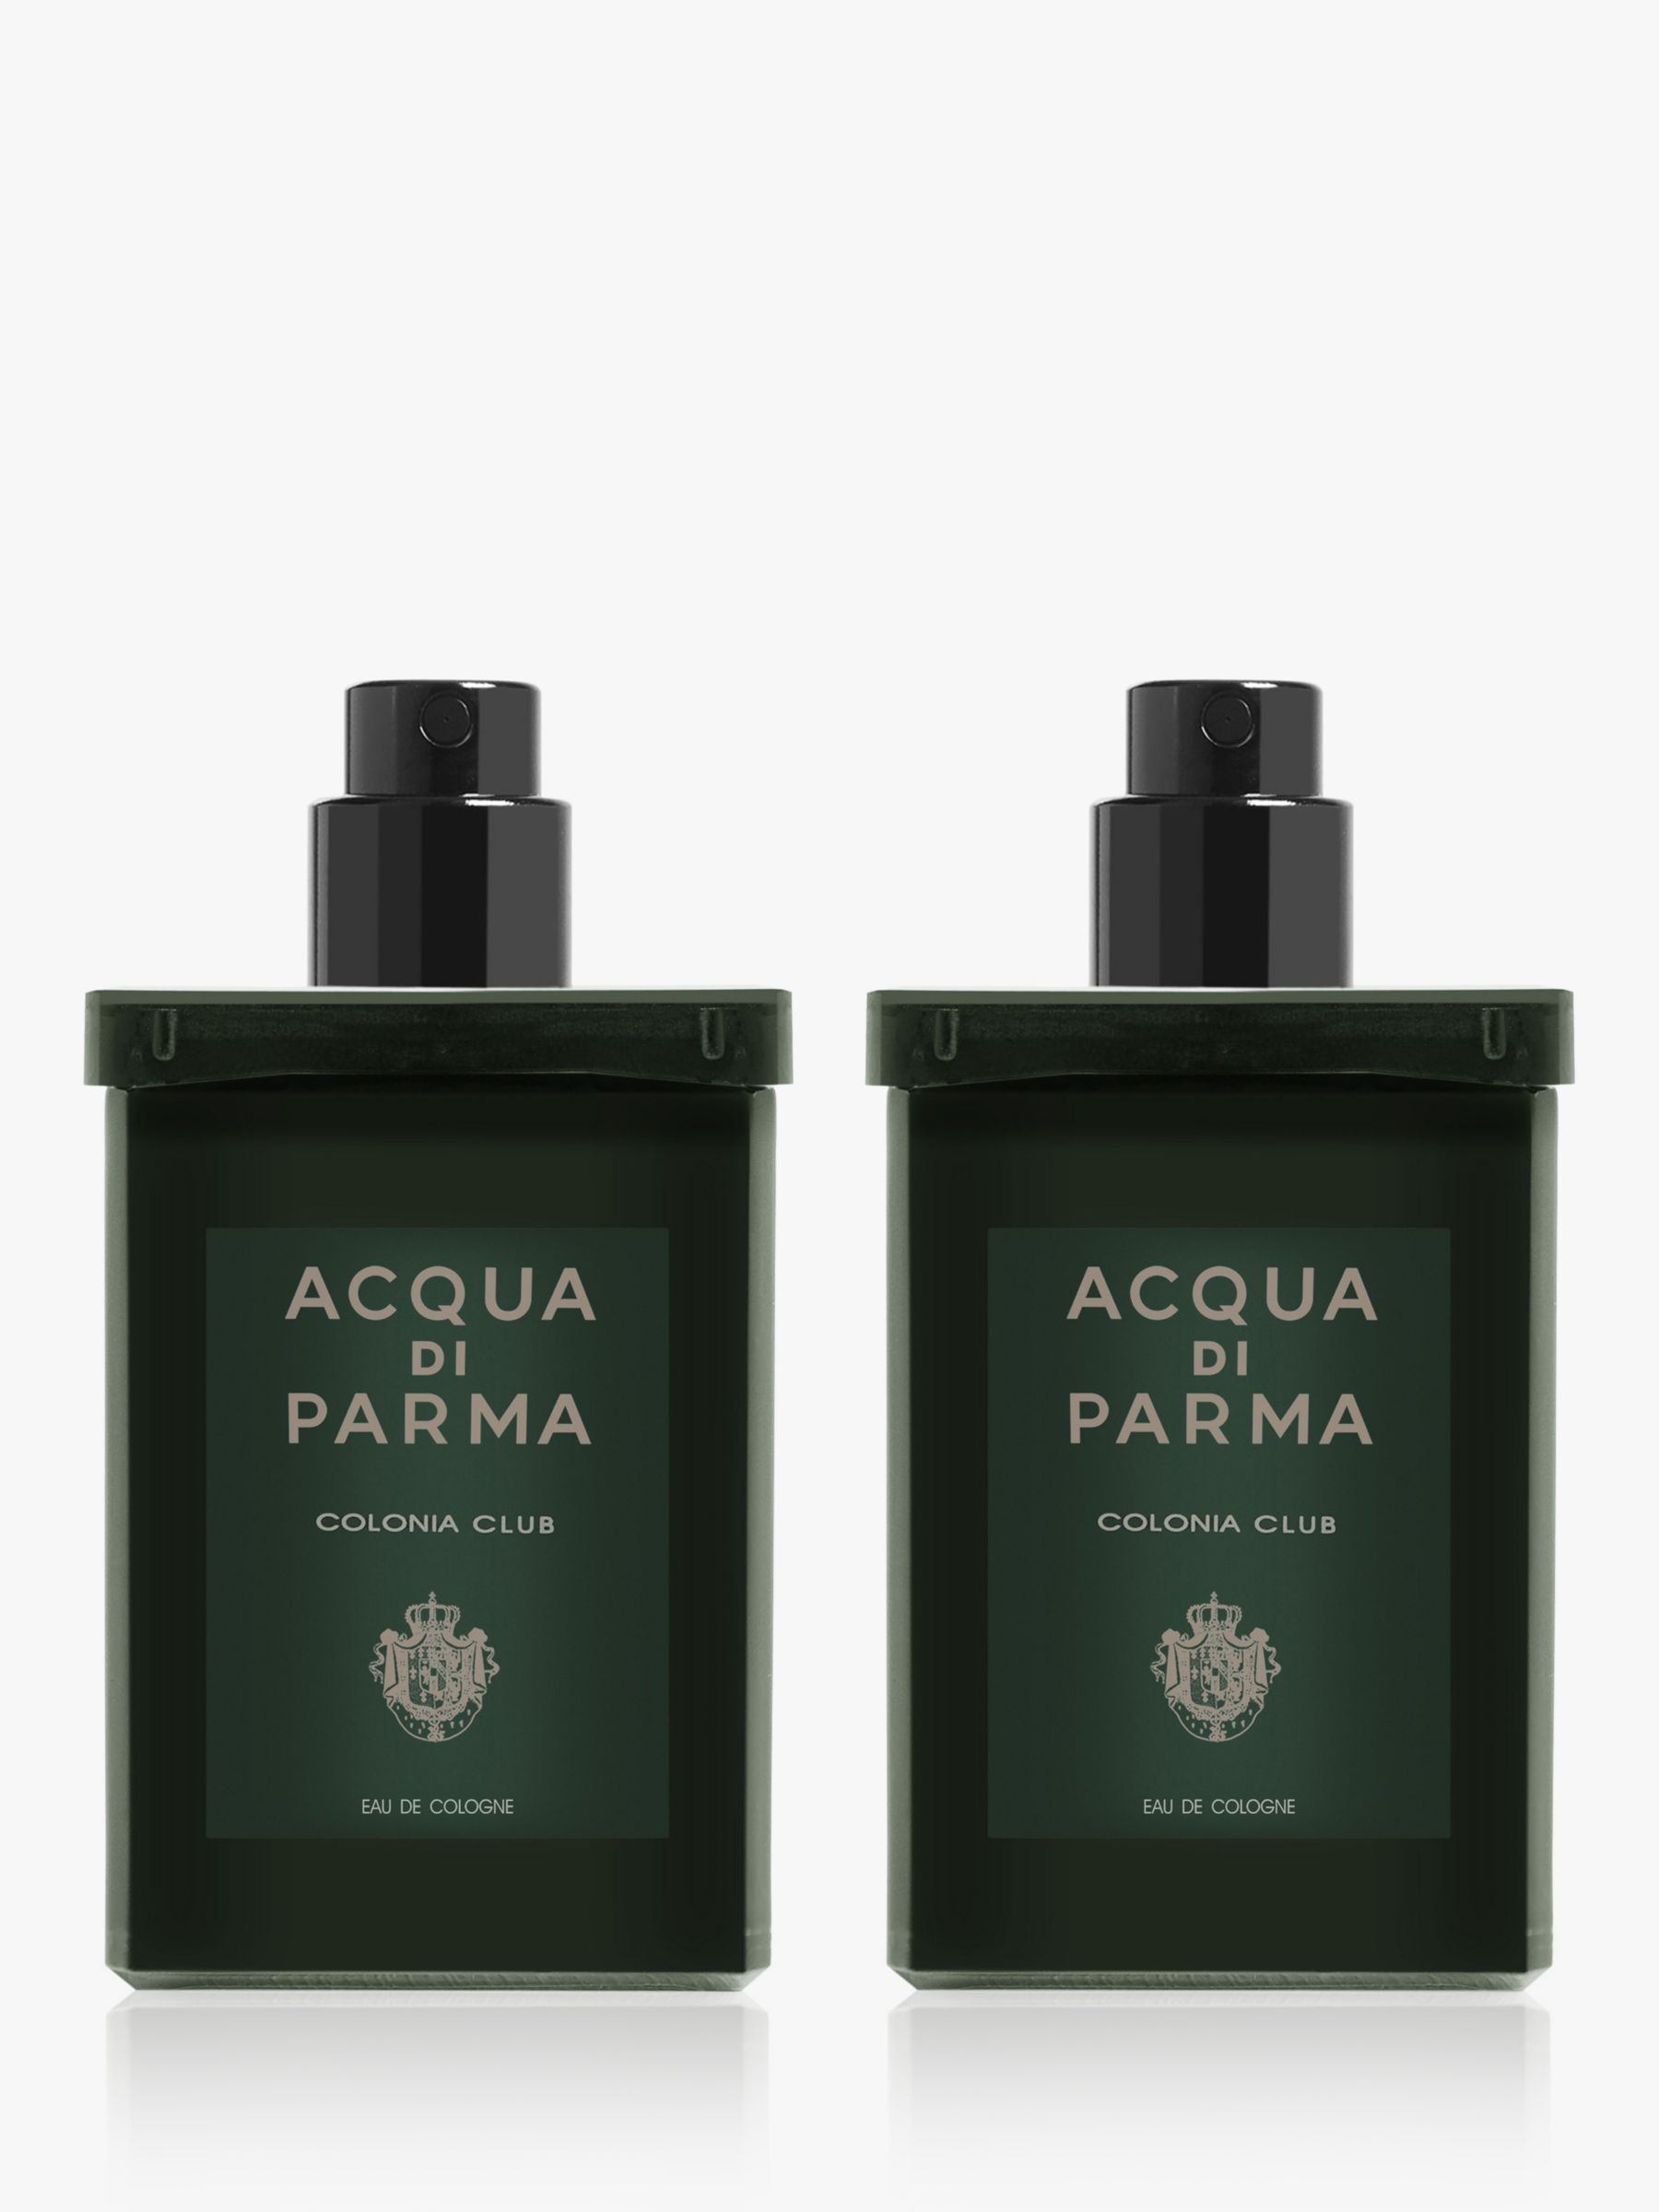 Acqua Di Parma Acqua di Parma Colonia Club Eau de Cologne Travel Spray Refill, 2 x 30ml